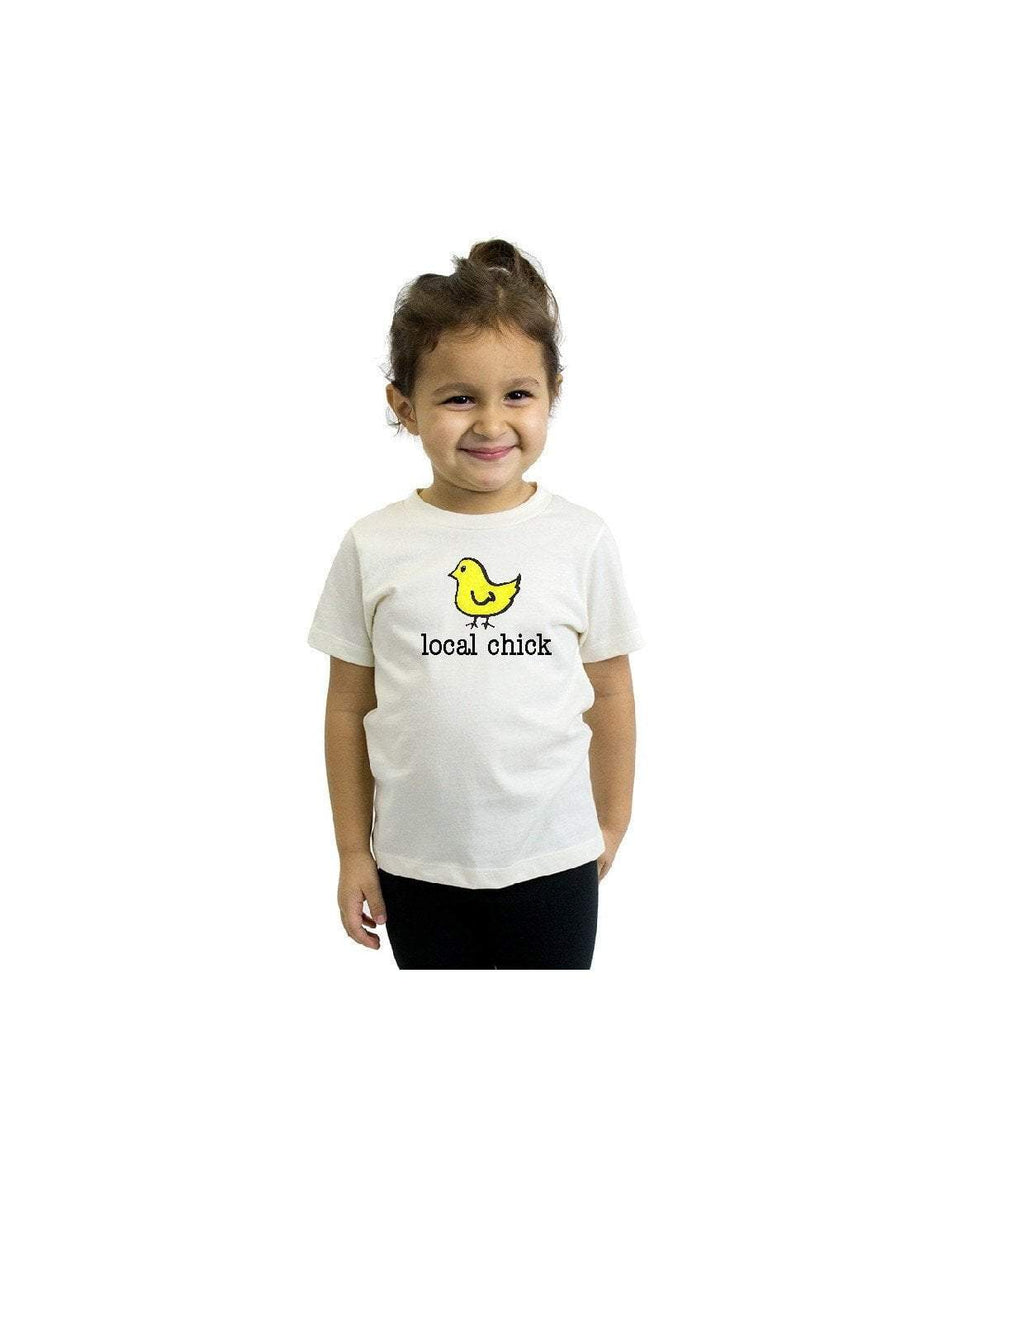 Local Chick Toddler t-shirt